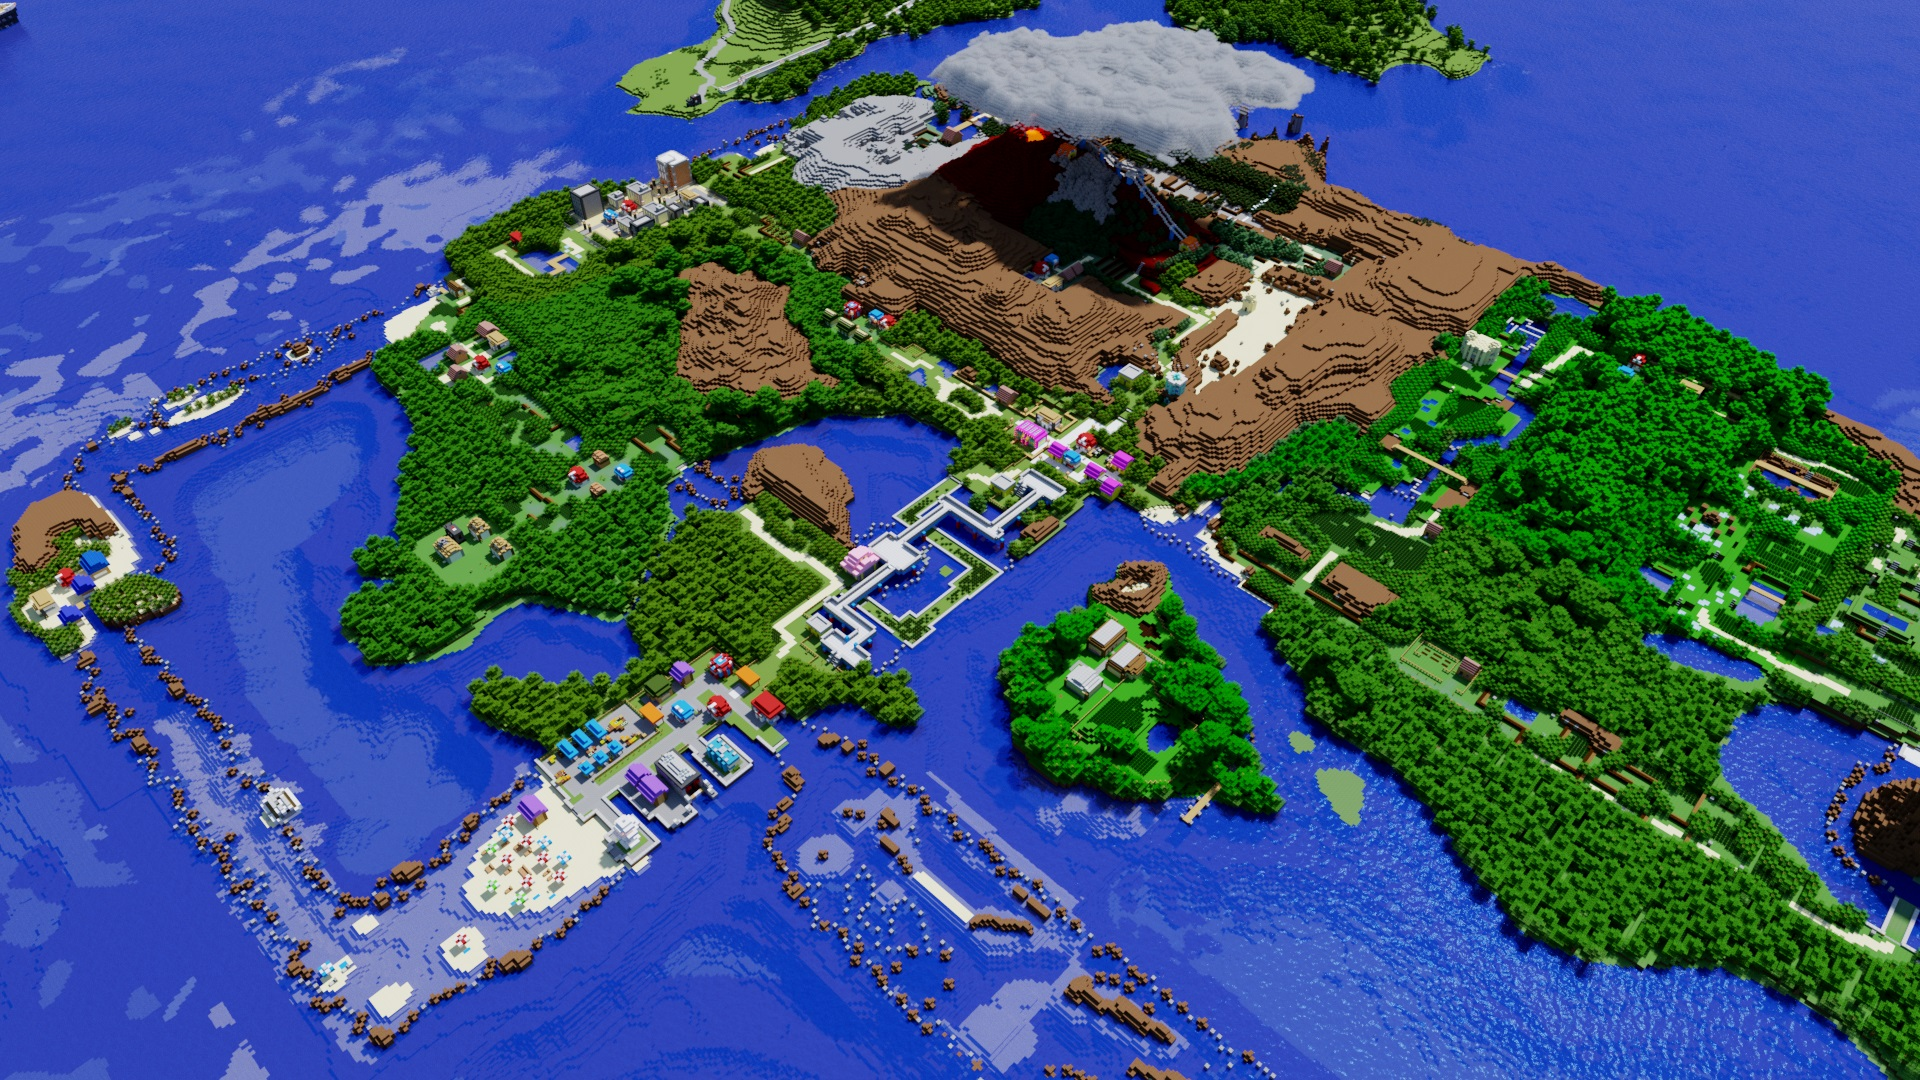 New Pokémon Map in Minecraft Takes Community by Storm ... on pokemon world map and locations, pokemon white version map, minecraft pokemon soul silver map, pokemon crystal map, pokemon soul silver rom, all pokemon regions world map, pokemon unova map, pokemon black route 10, pokemon xy, pokemon kalos region, pokemon town map, pokemon mount moon map, pokemon kanto map, pokemon gold map, pokemon laverre city gym map, pokemon y trailer, pokemon black map, pokemon diamond, pokemon y pokemon, pokemon pearl map,